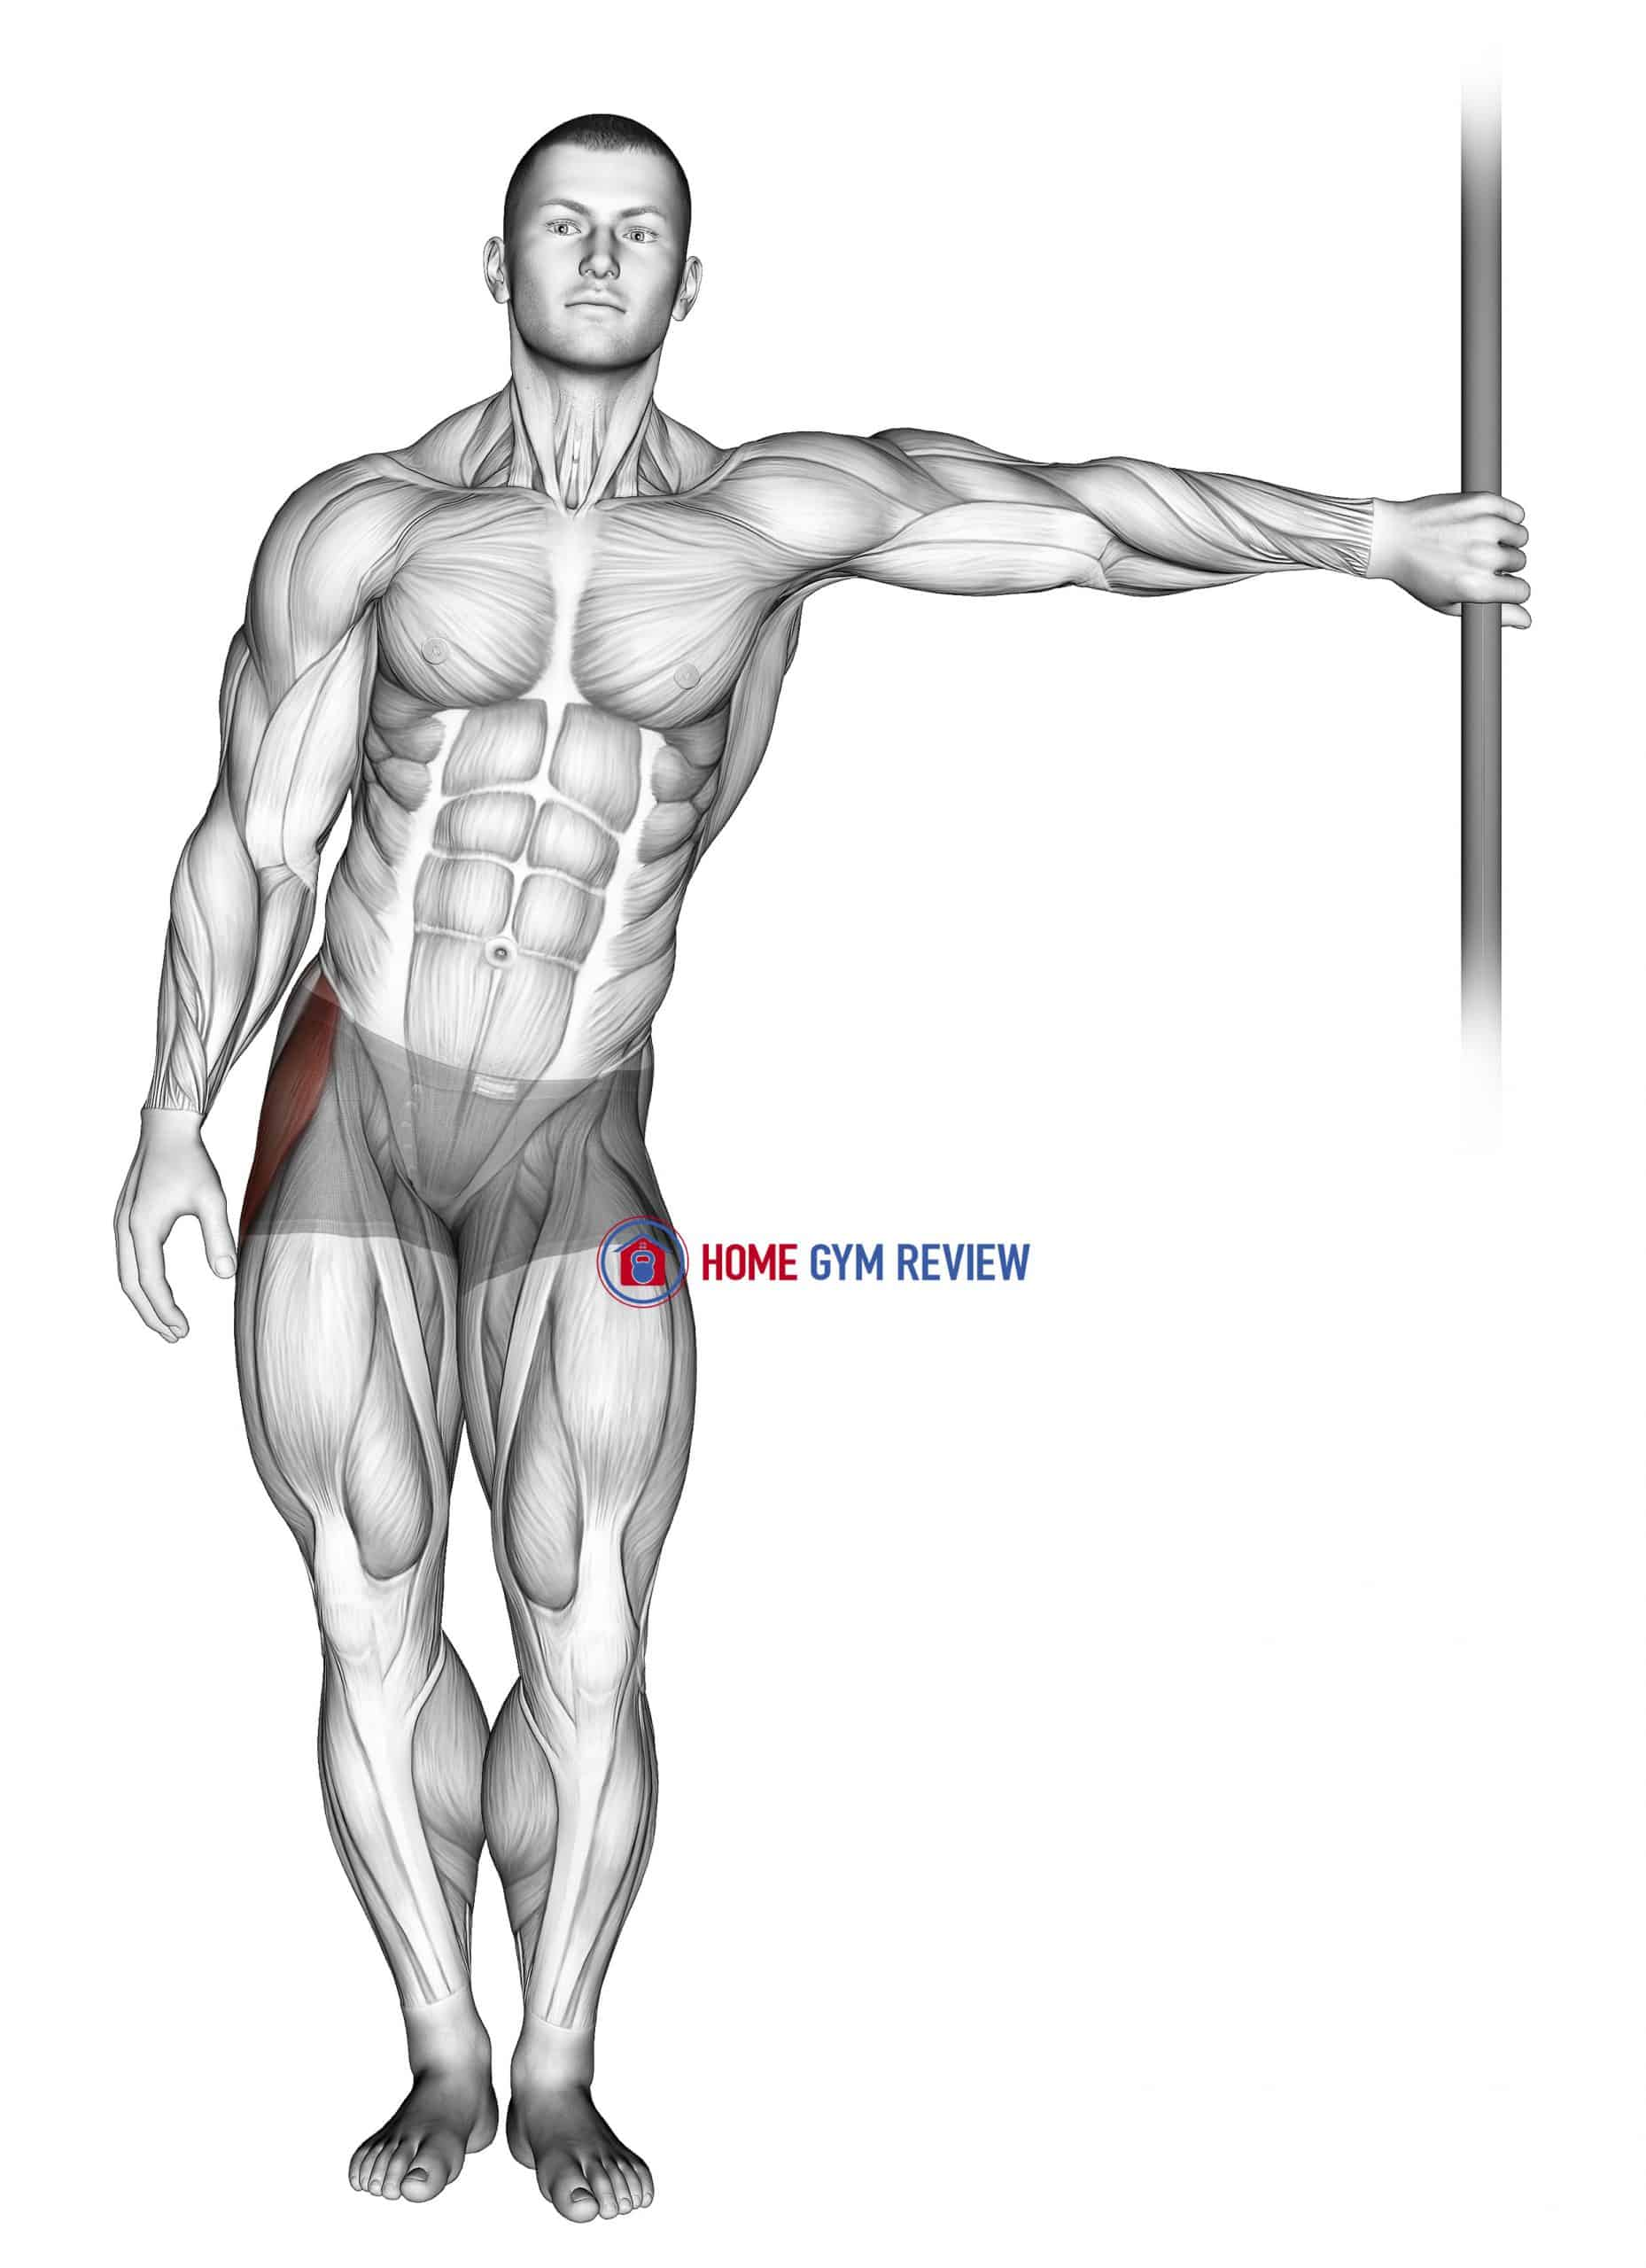 Leaning Abductor Stretch